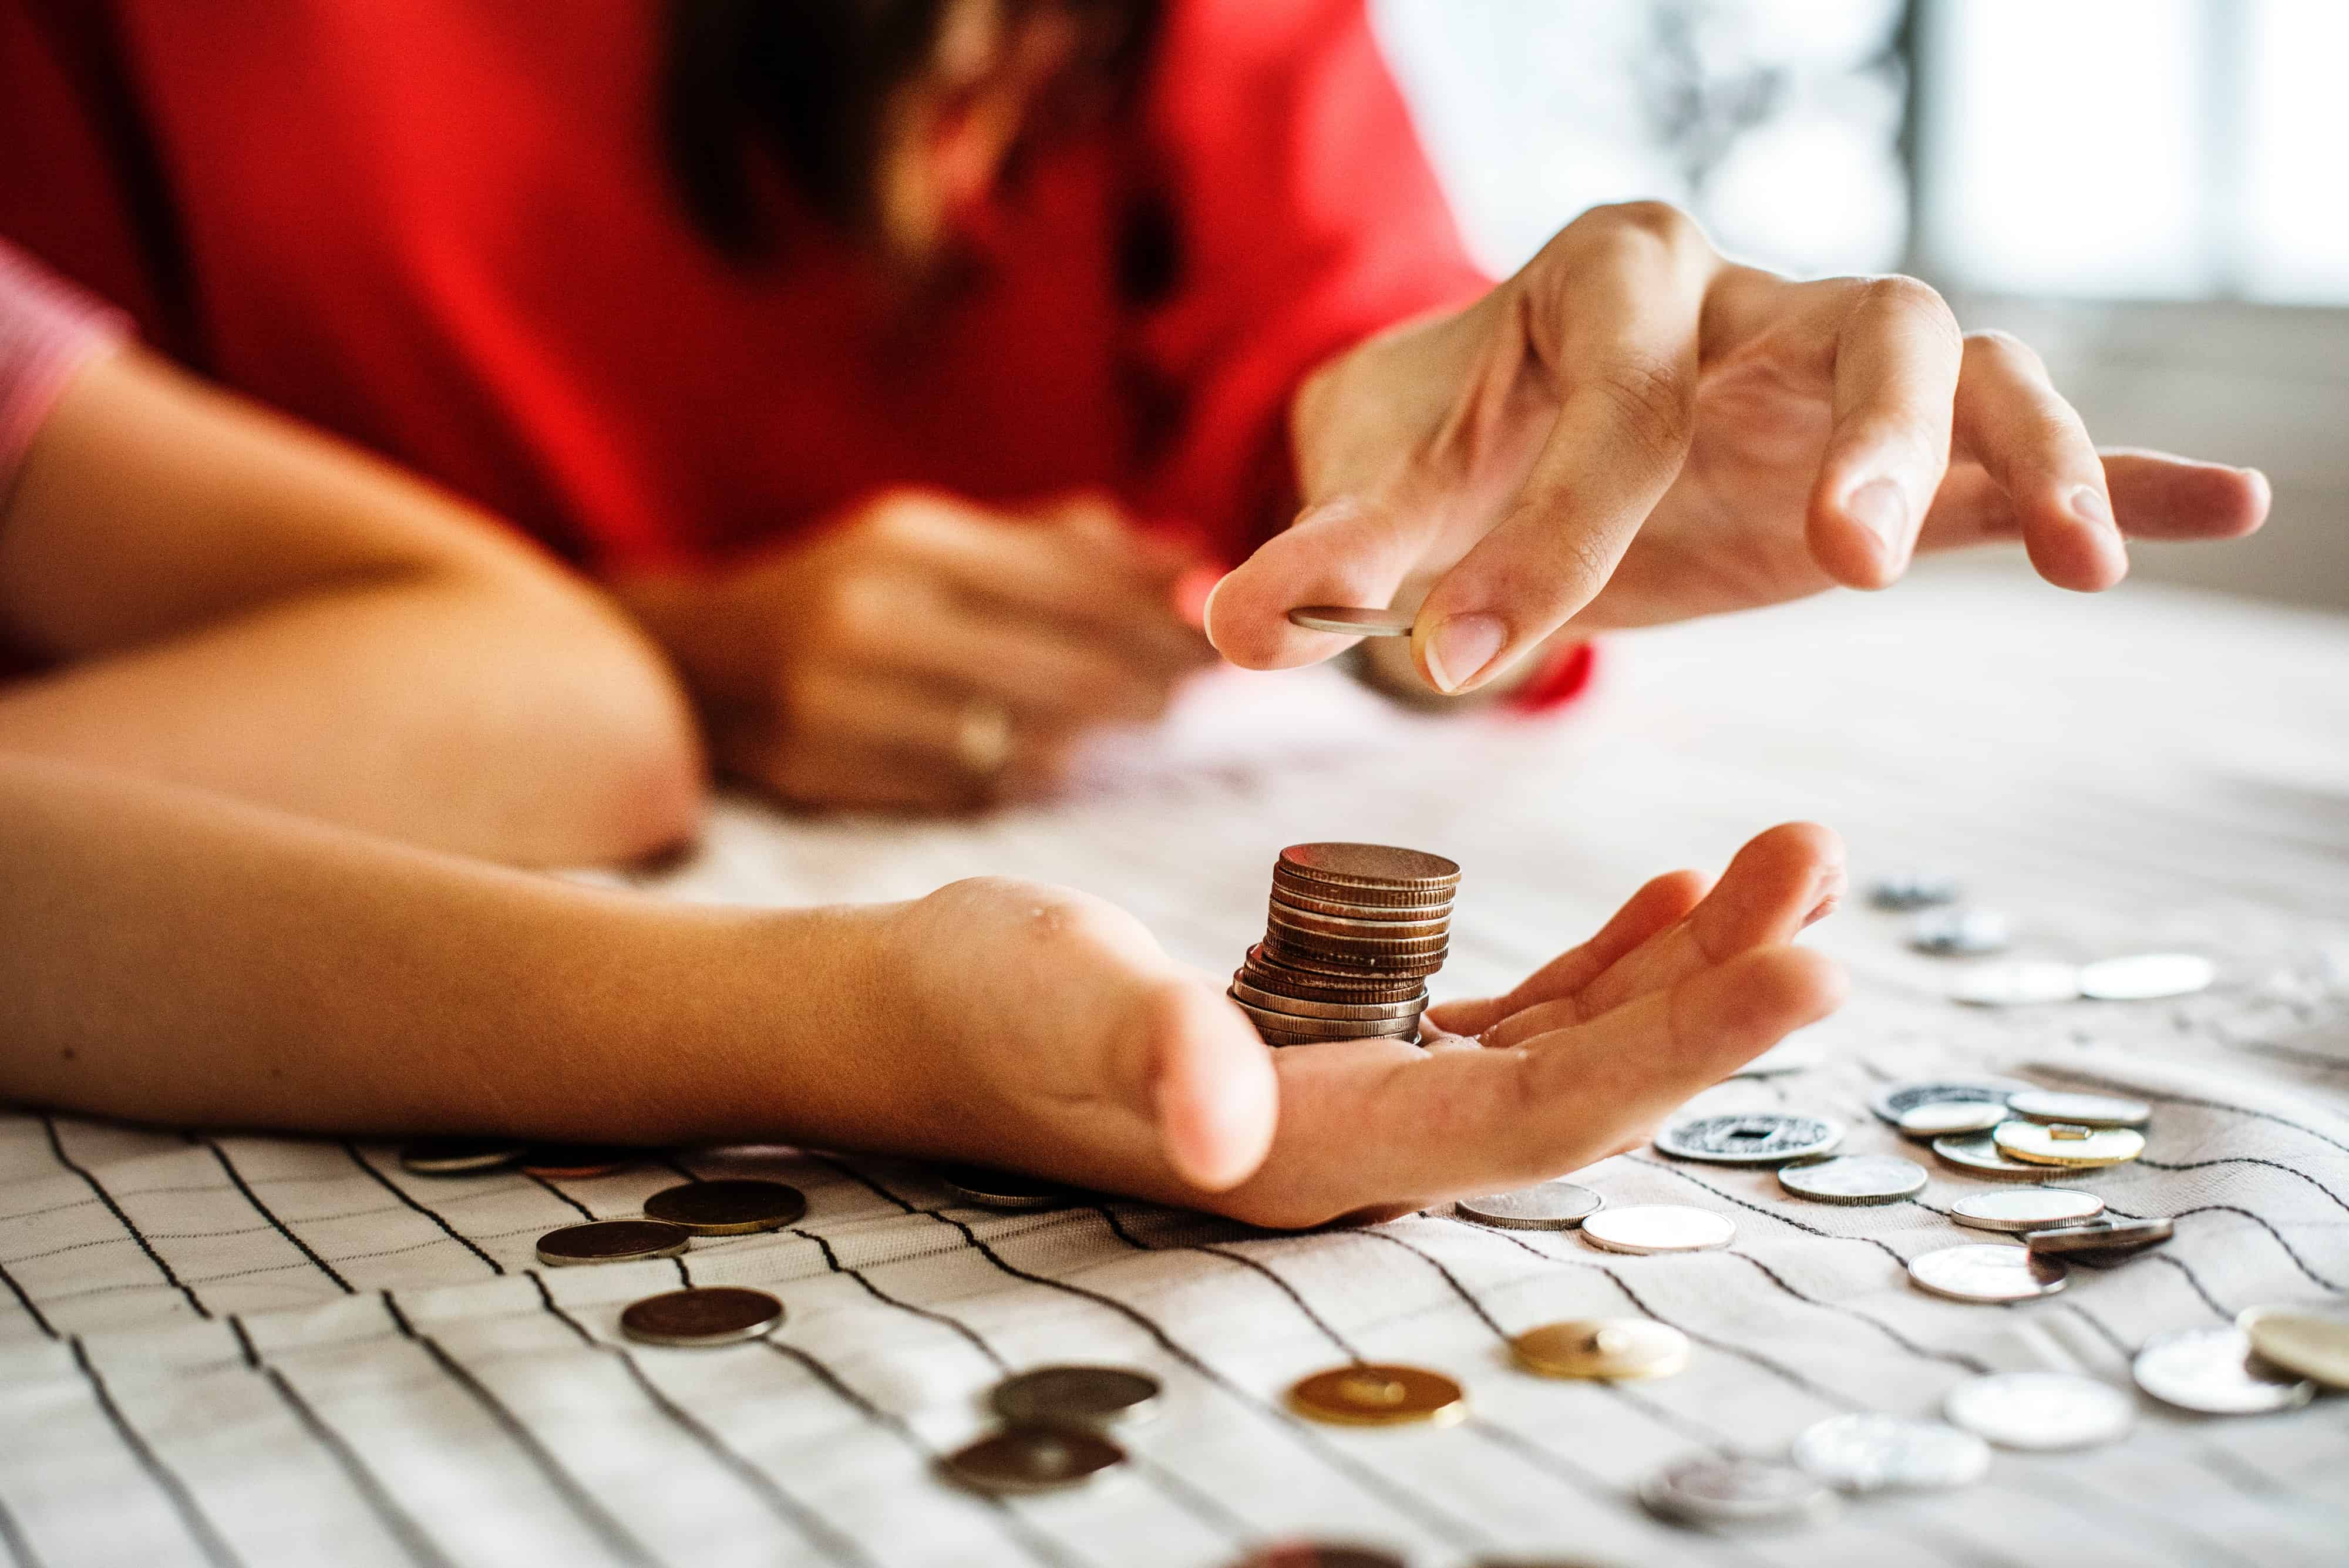 How to Budget When You Live Paycheck to Paycheck